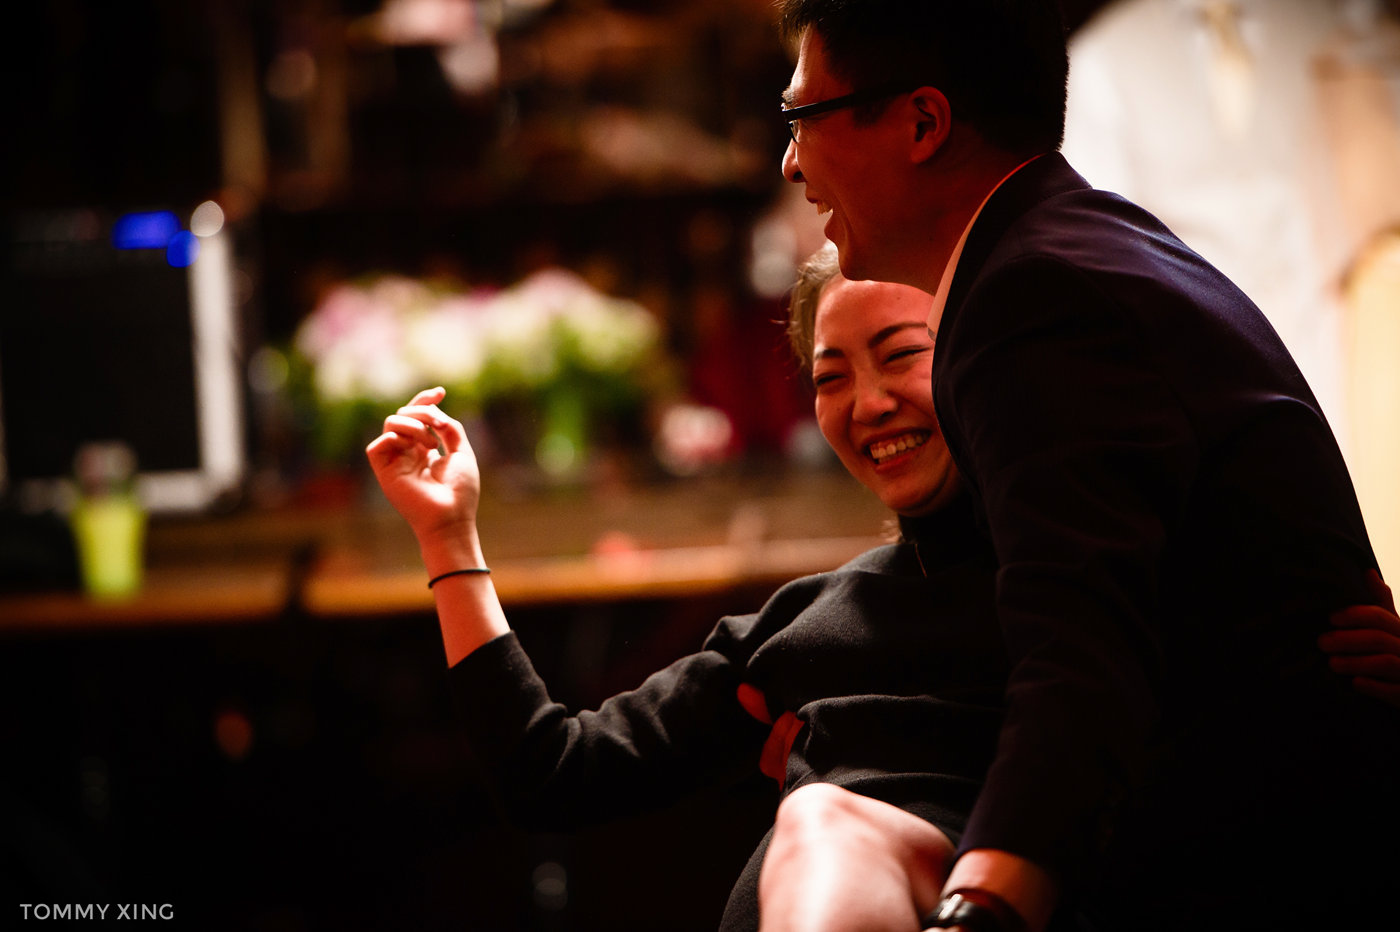 Seattle Wedding and pre wedding Los Angeles Tommy Xing Photography 西雅图洛杉矶旧金山婚礼婚纱照摄影师 207.jpg